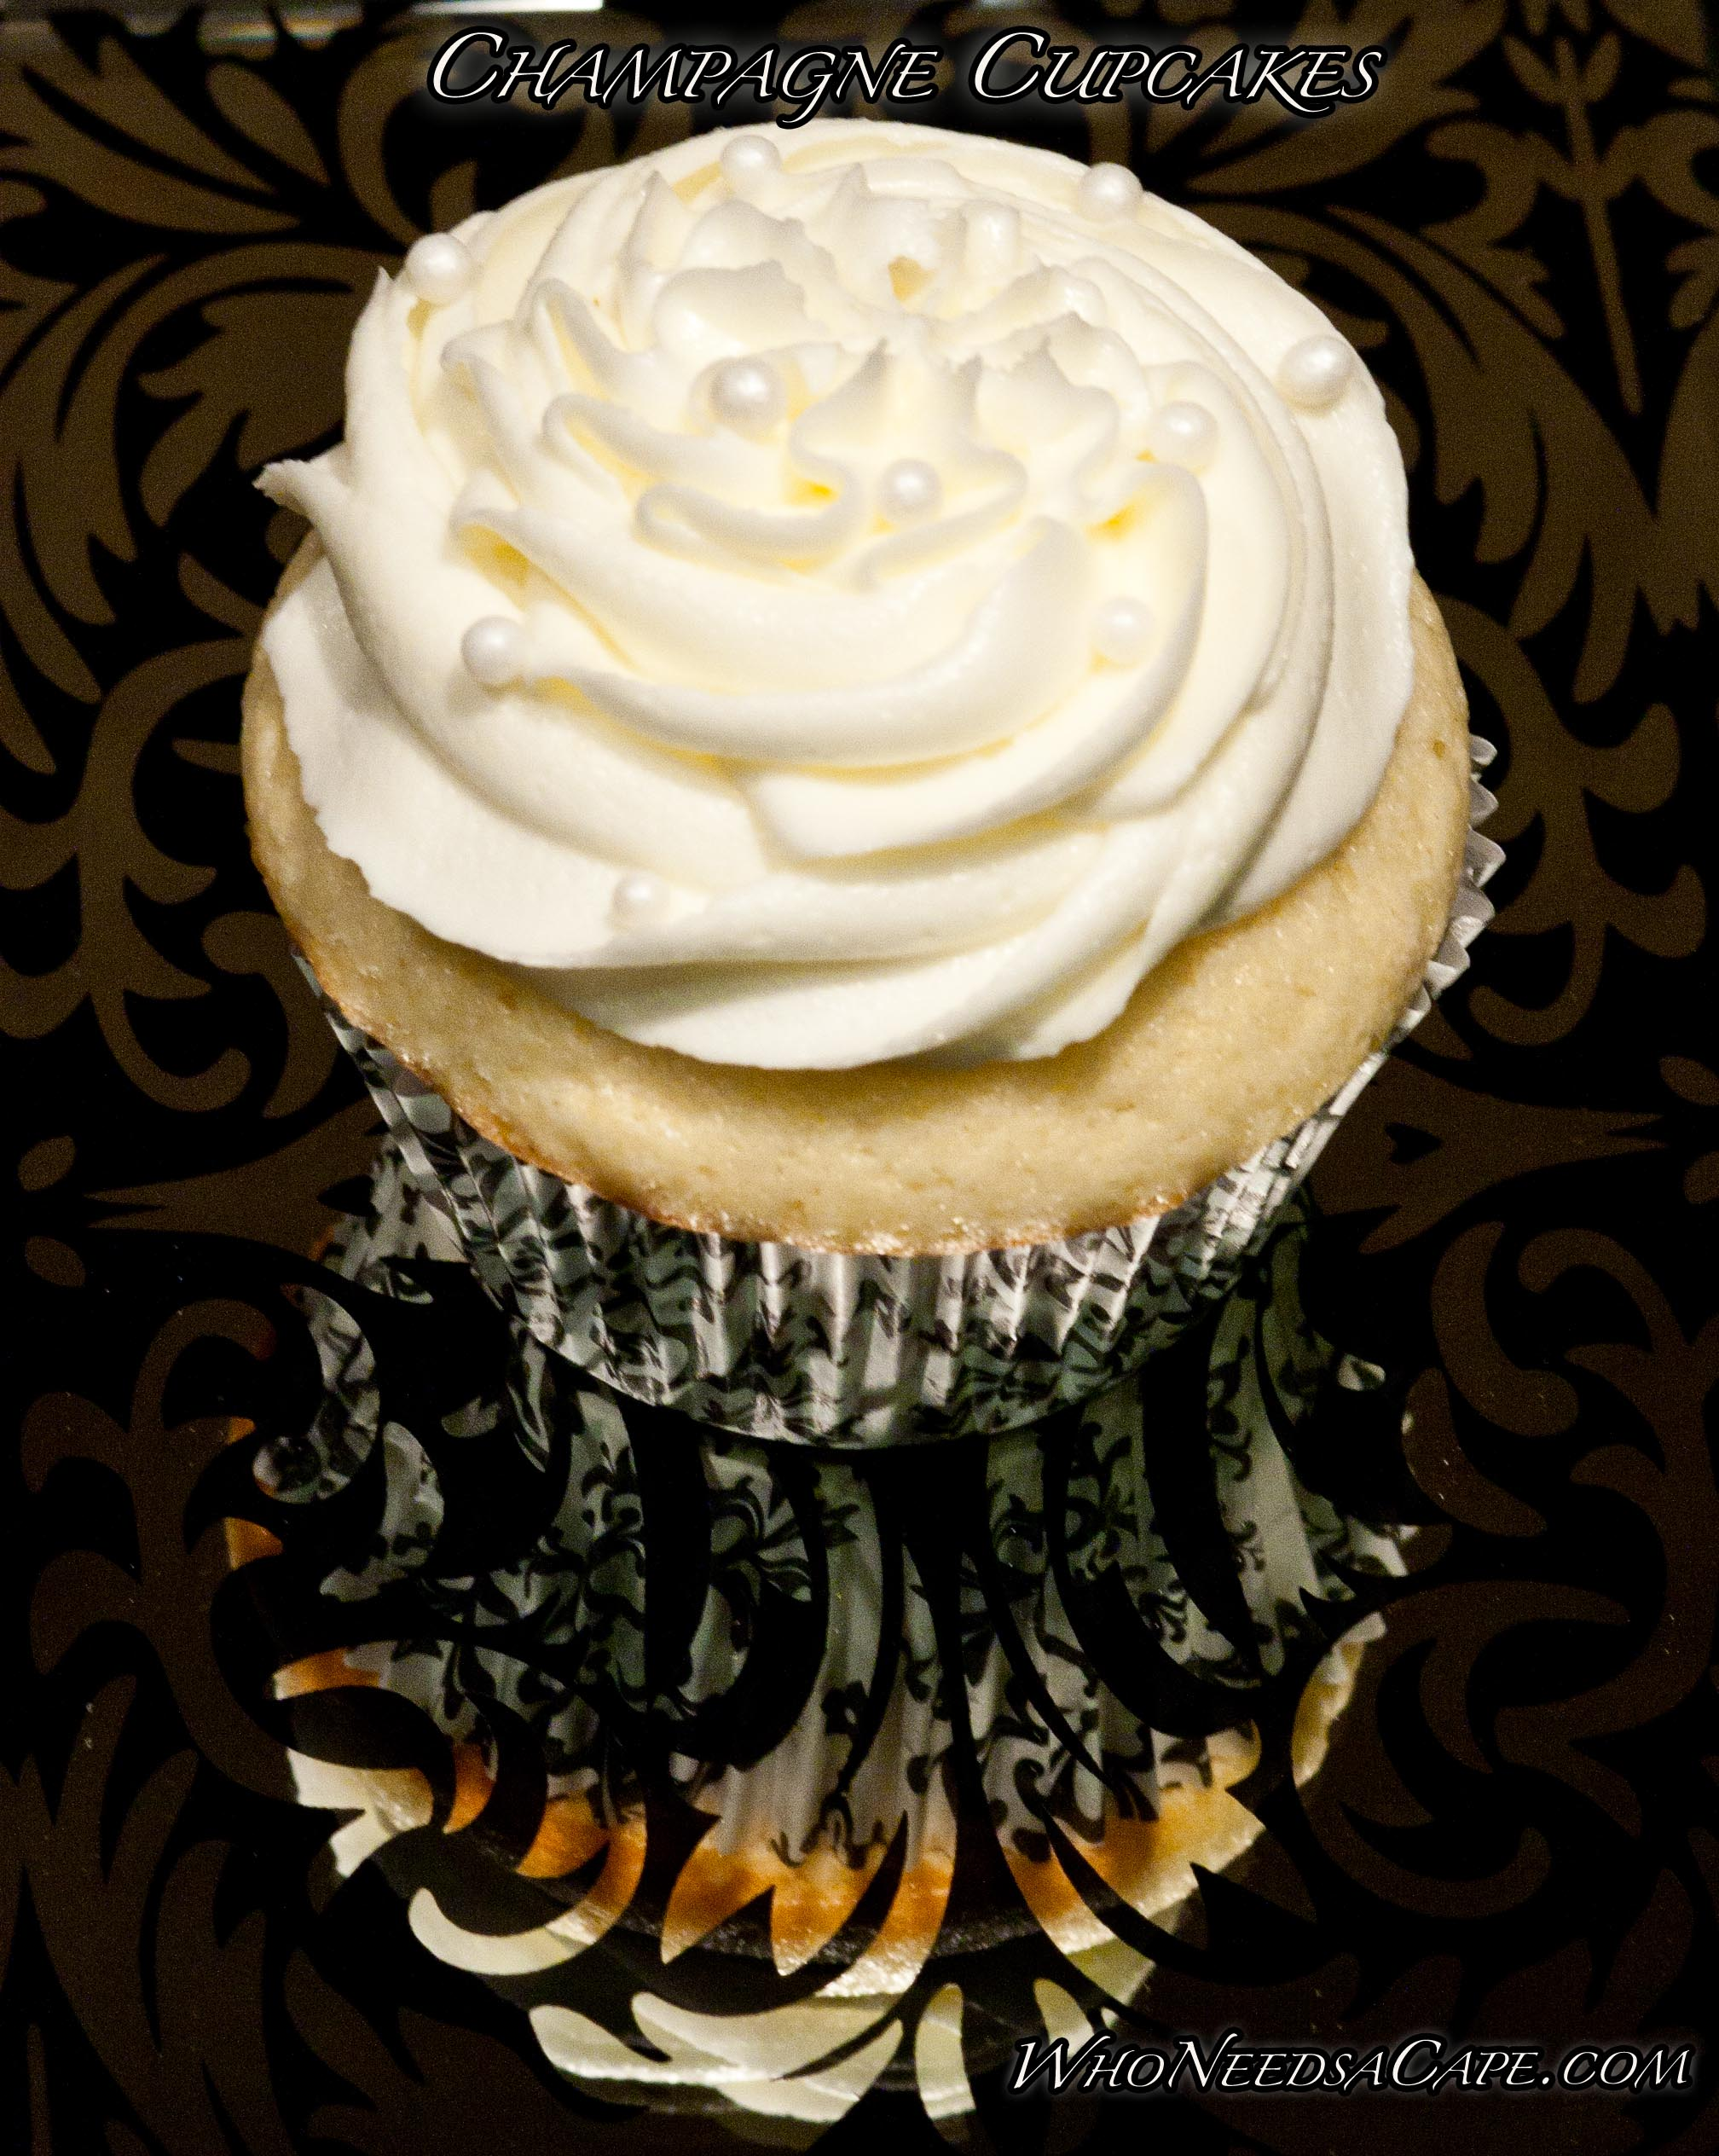 Serve these Champagne Cupcakes the next time you'd like to impress your guests! Easy to prepare yet they bring a wow factor to the dessert table!